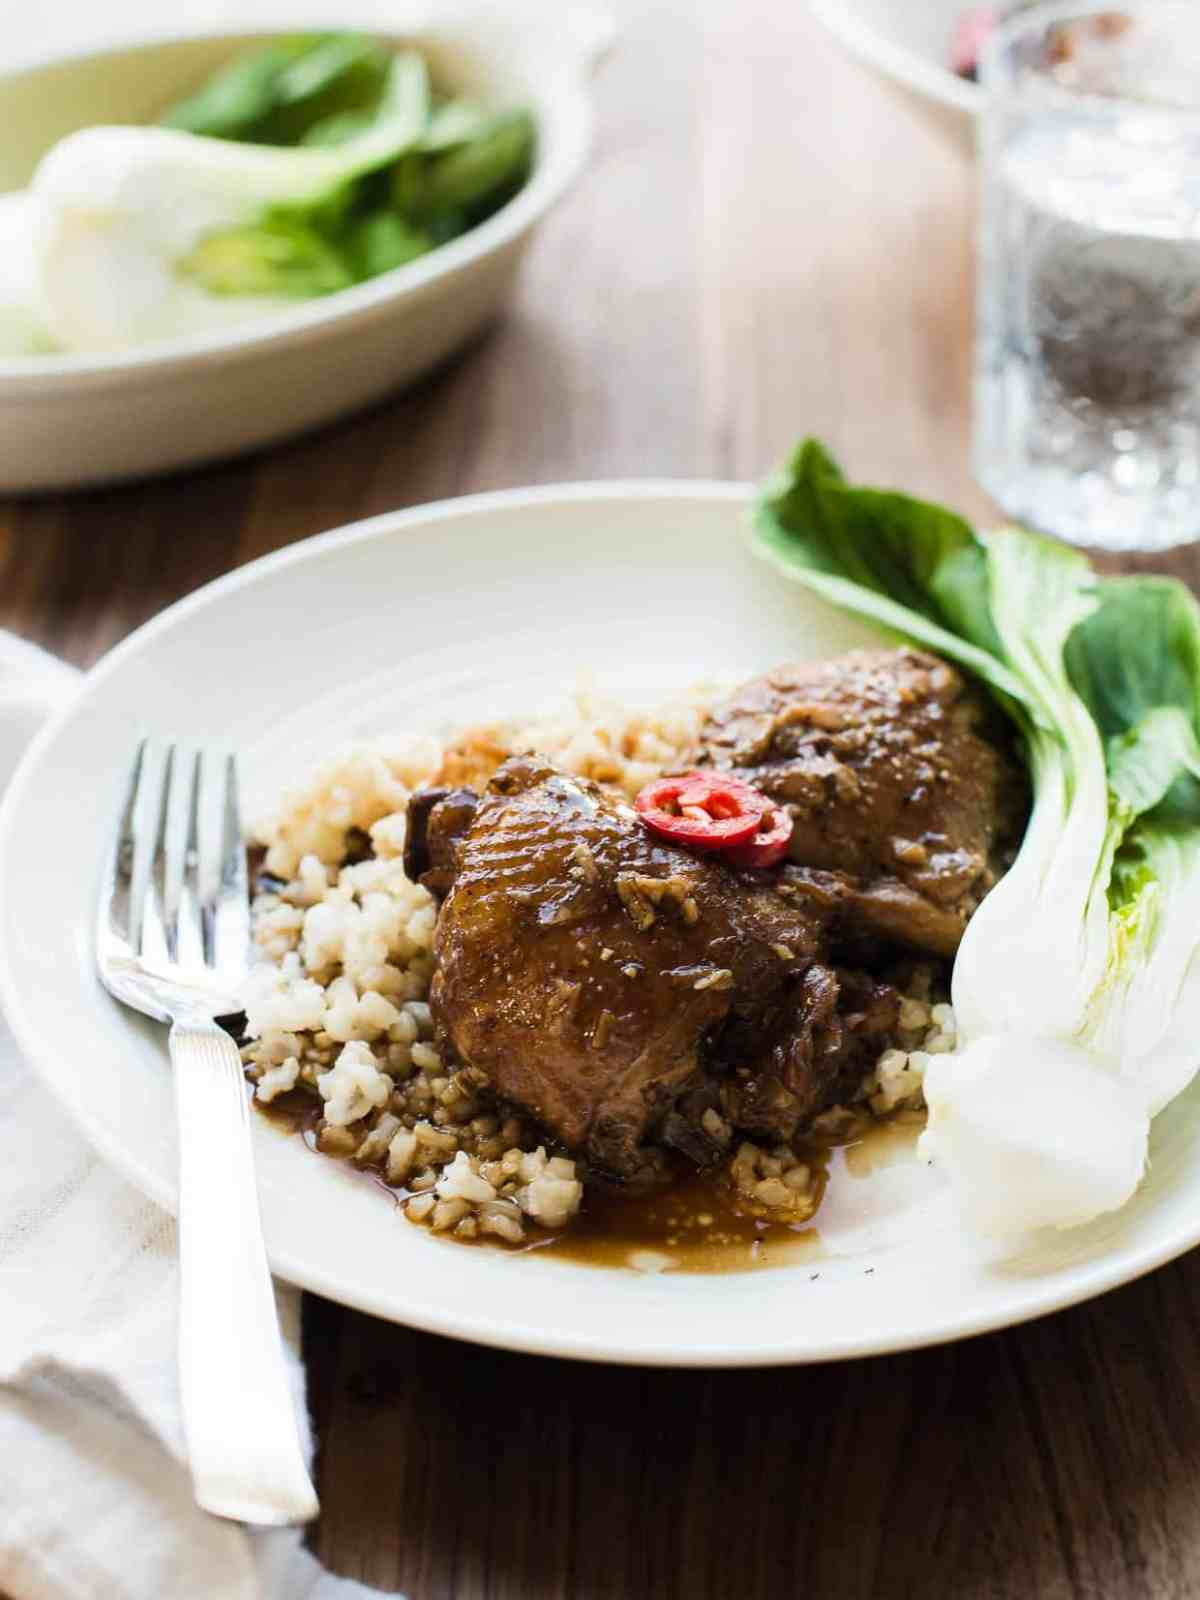 Plate of Filipino Chicken Adobo served over rice - the ultimate comfort food.